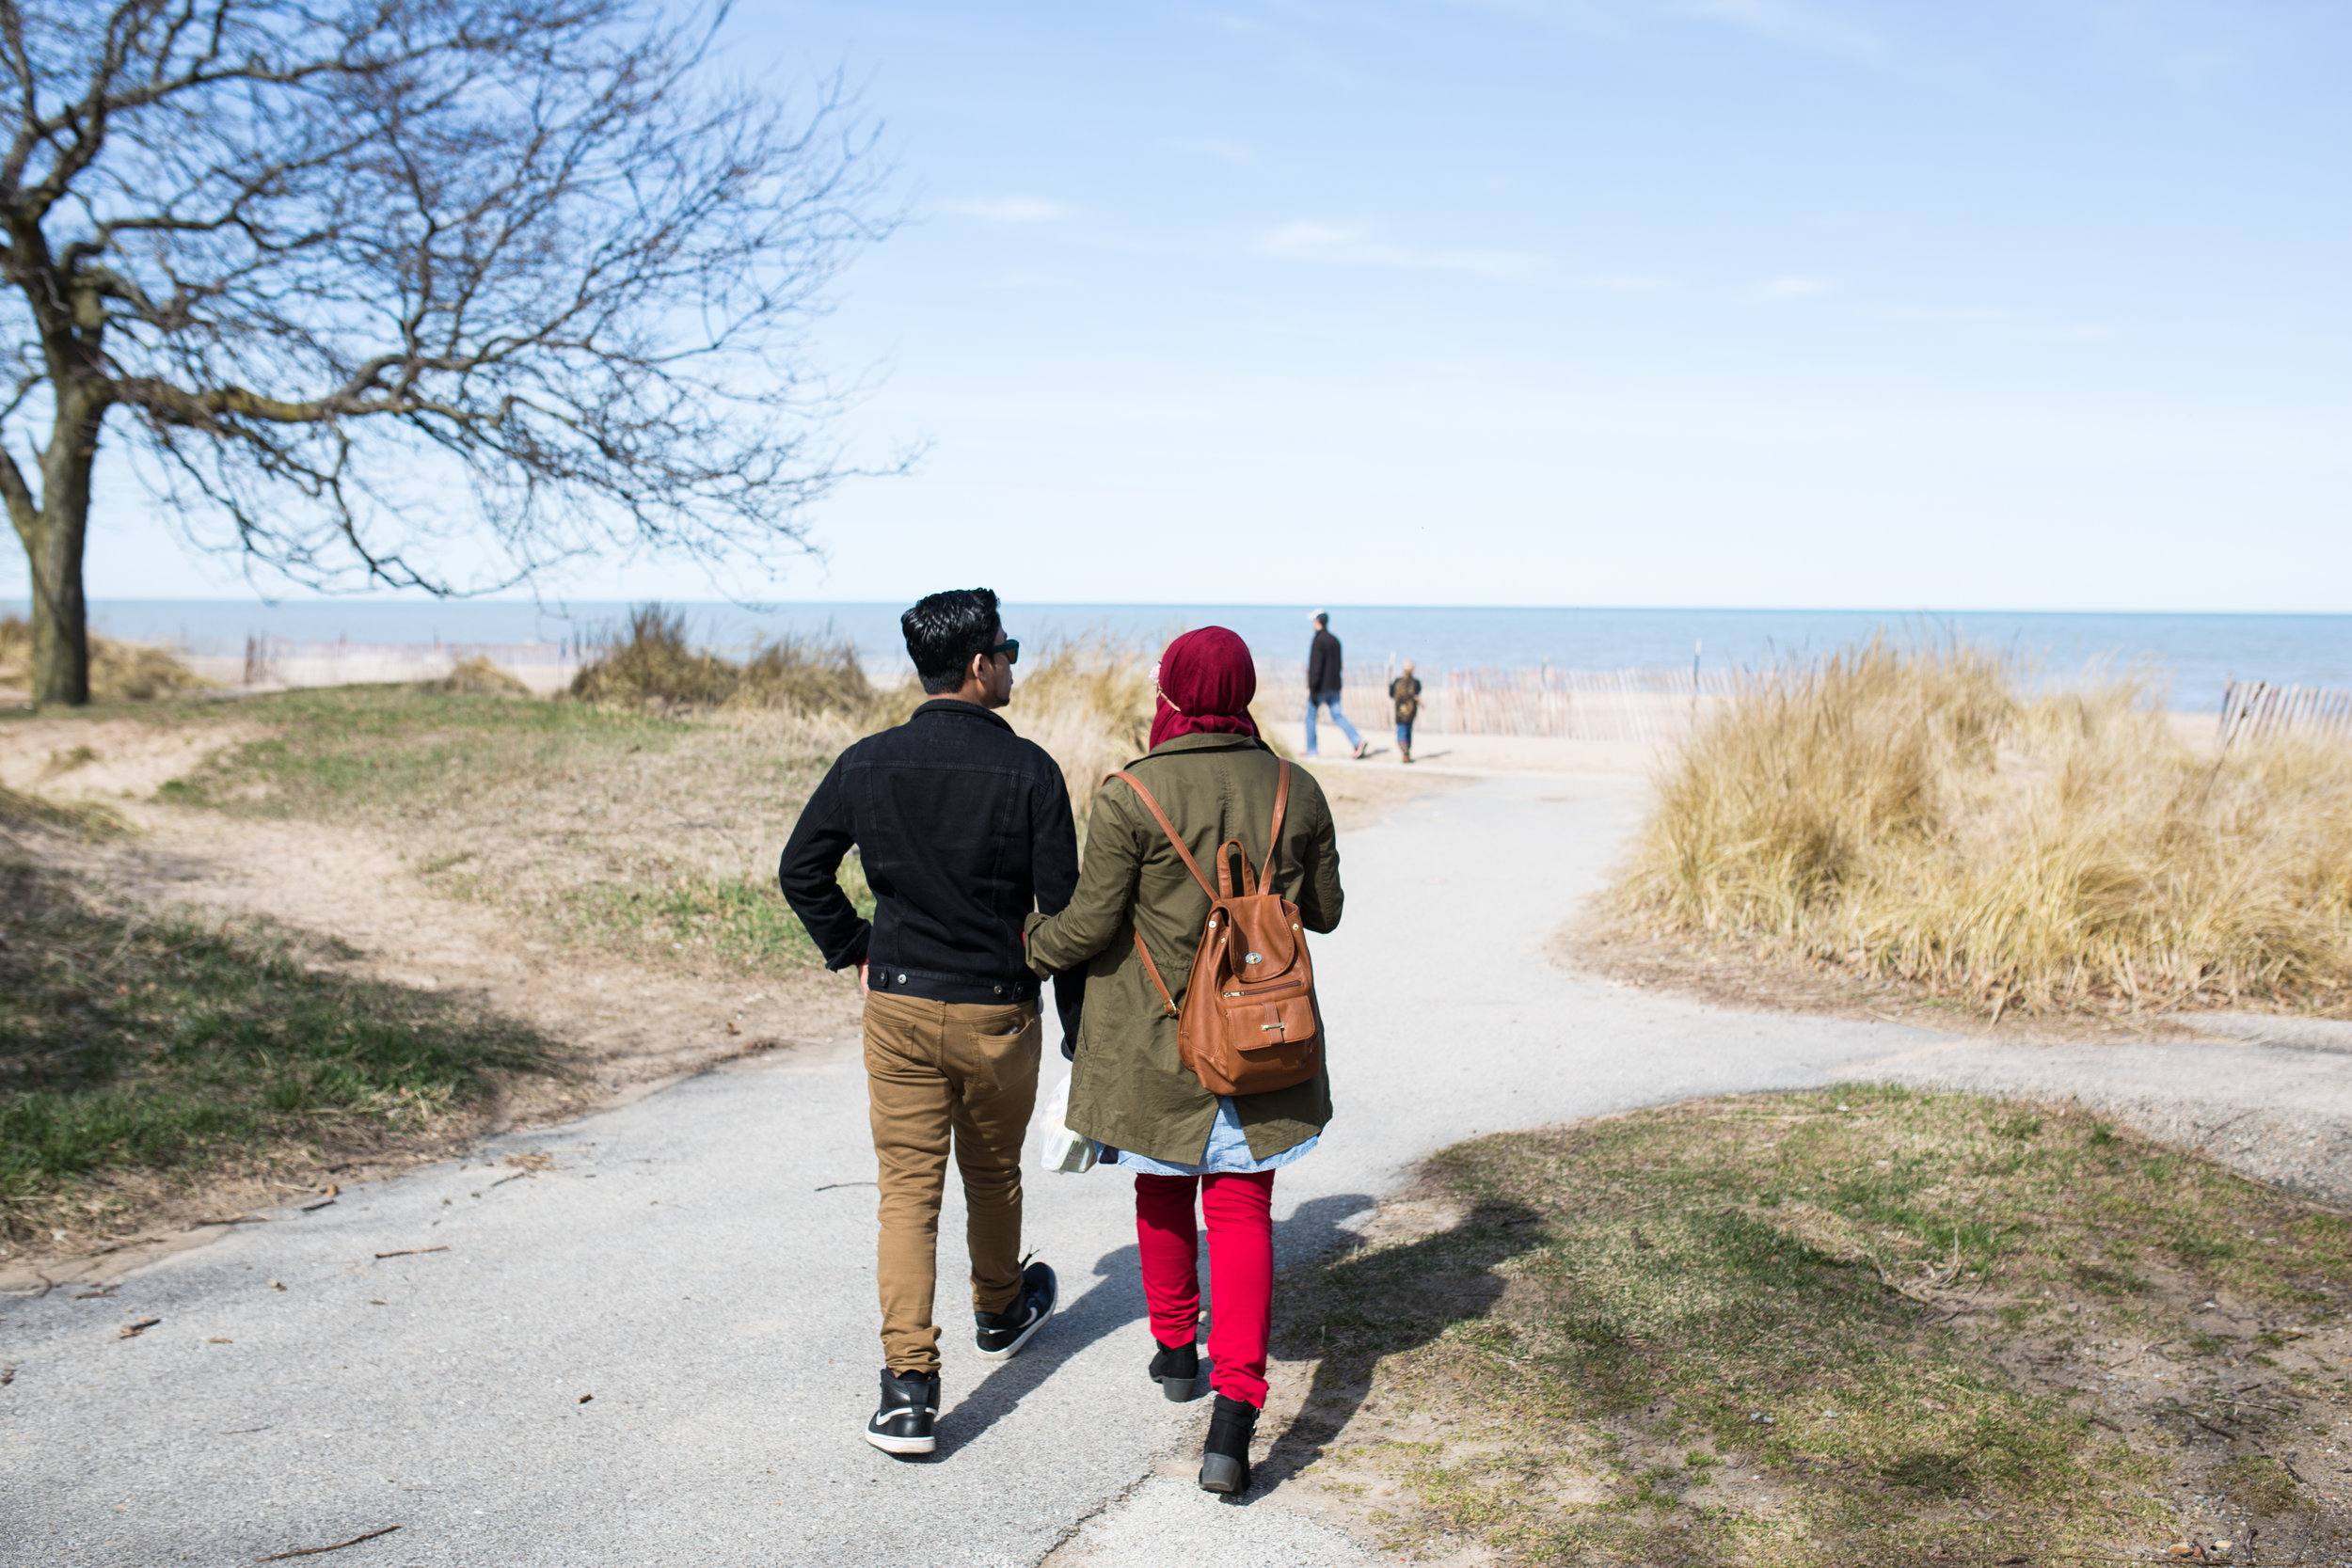 Abdul Samad with his wife, Bibi, 18, on Lake Michigan. They met in the United States in 2016.